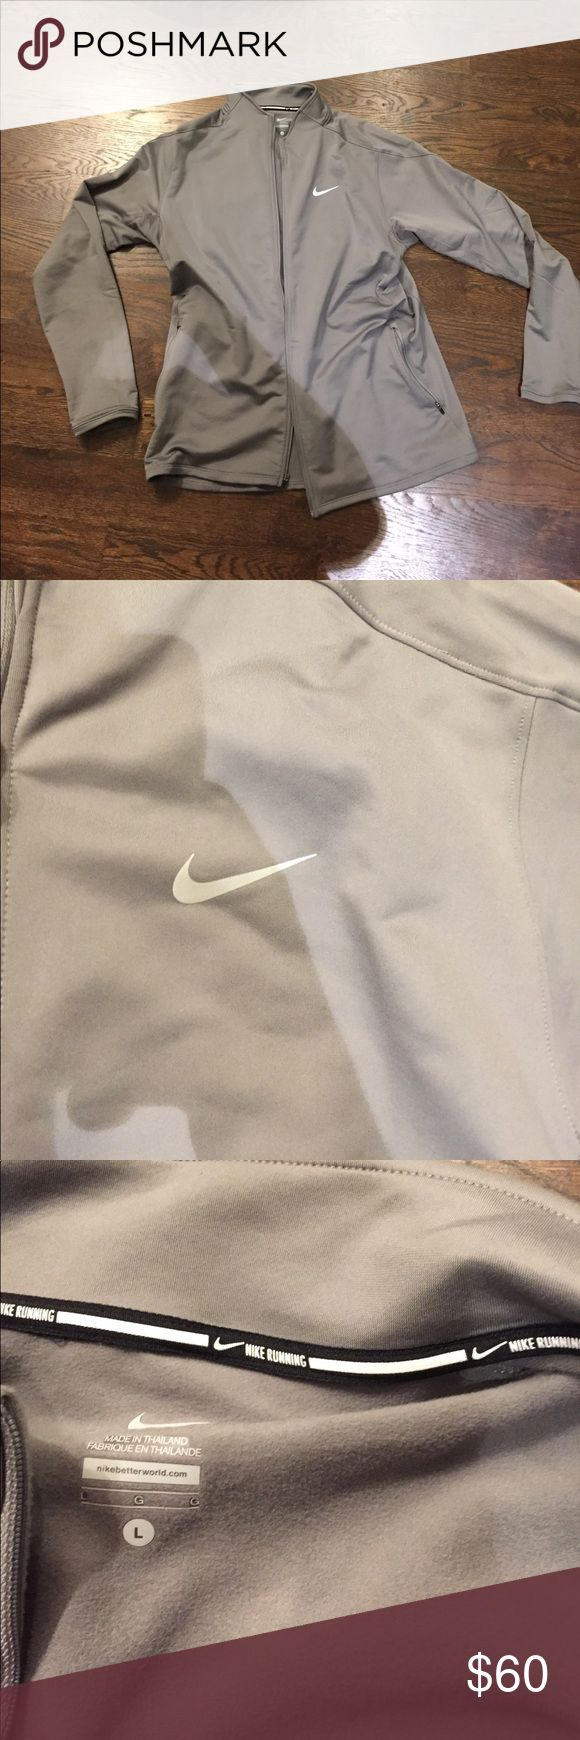 Men's Nike running jacket The zipper is broken on the bottom(pictured above) but seems like an easy fix, the jacket is great for running in the fall weather or whenever there is a breeze Nike Jackets & Coats Performance Jackets